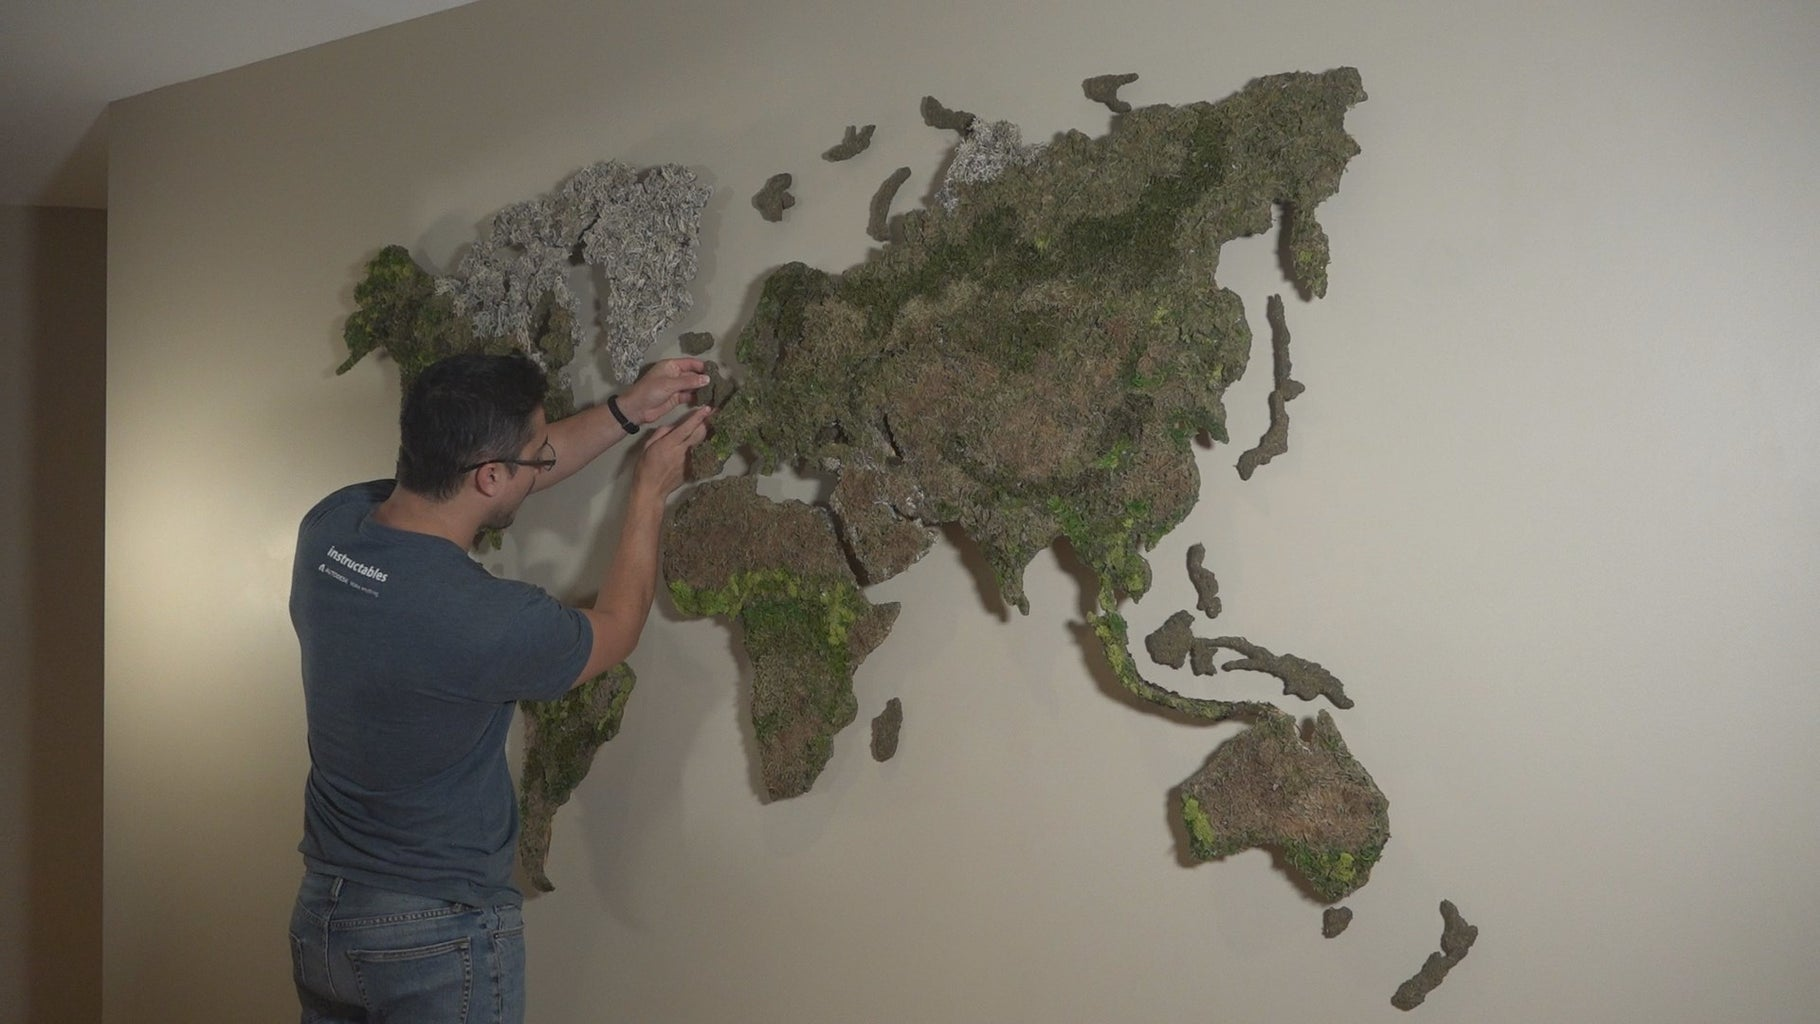 Final Mounting on the Wall